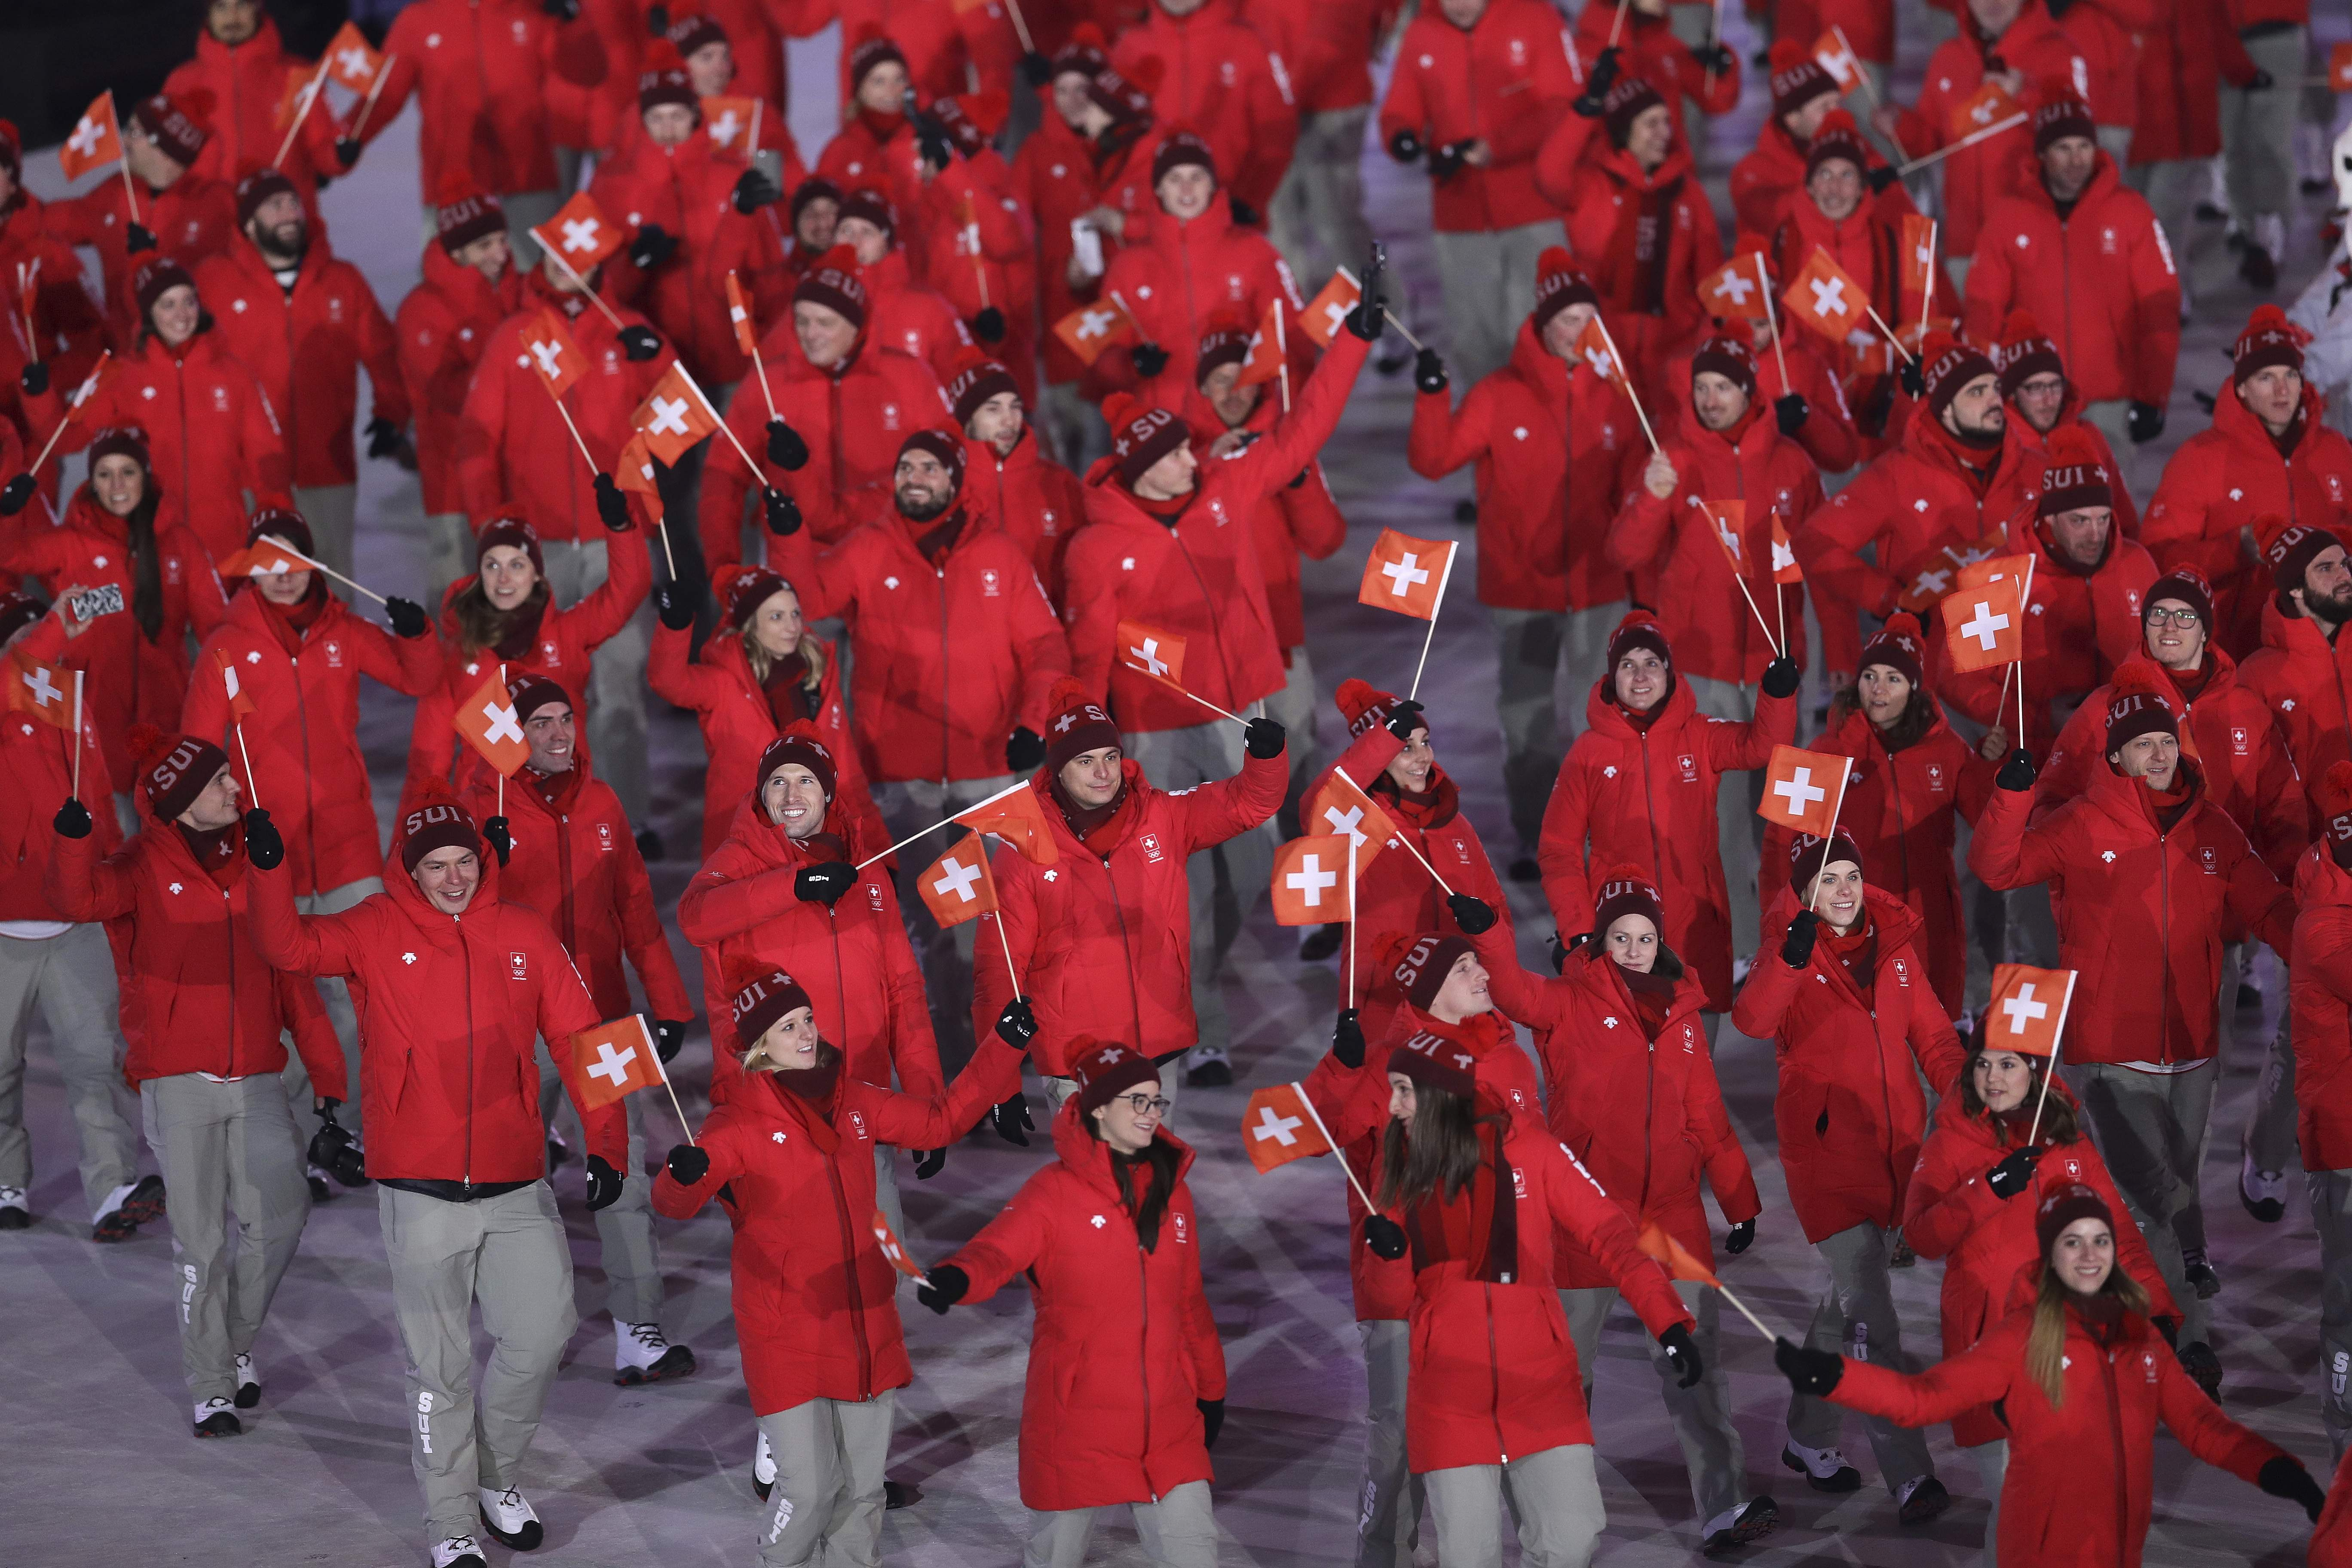 Switzerland during the opening ceremony of the 2018 Winter Olympics in Pyeongchang, South Korea, Friday, Feb. 9, 2018. (AP Photo/Michael Sohn)